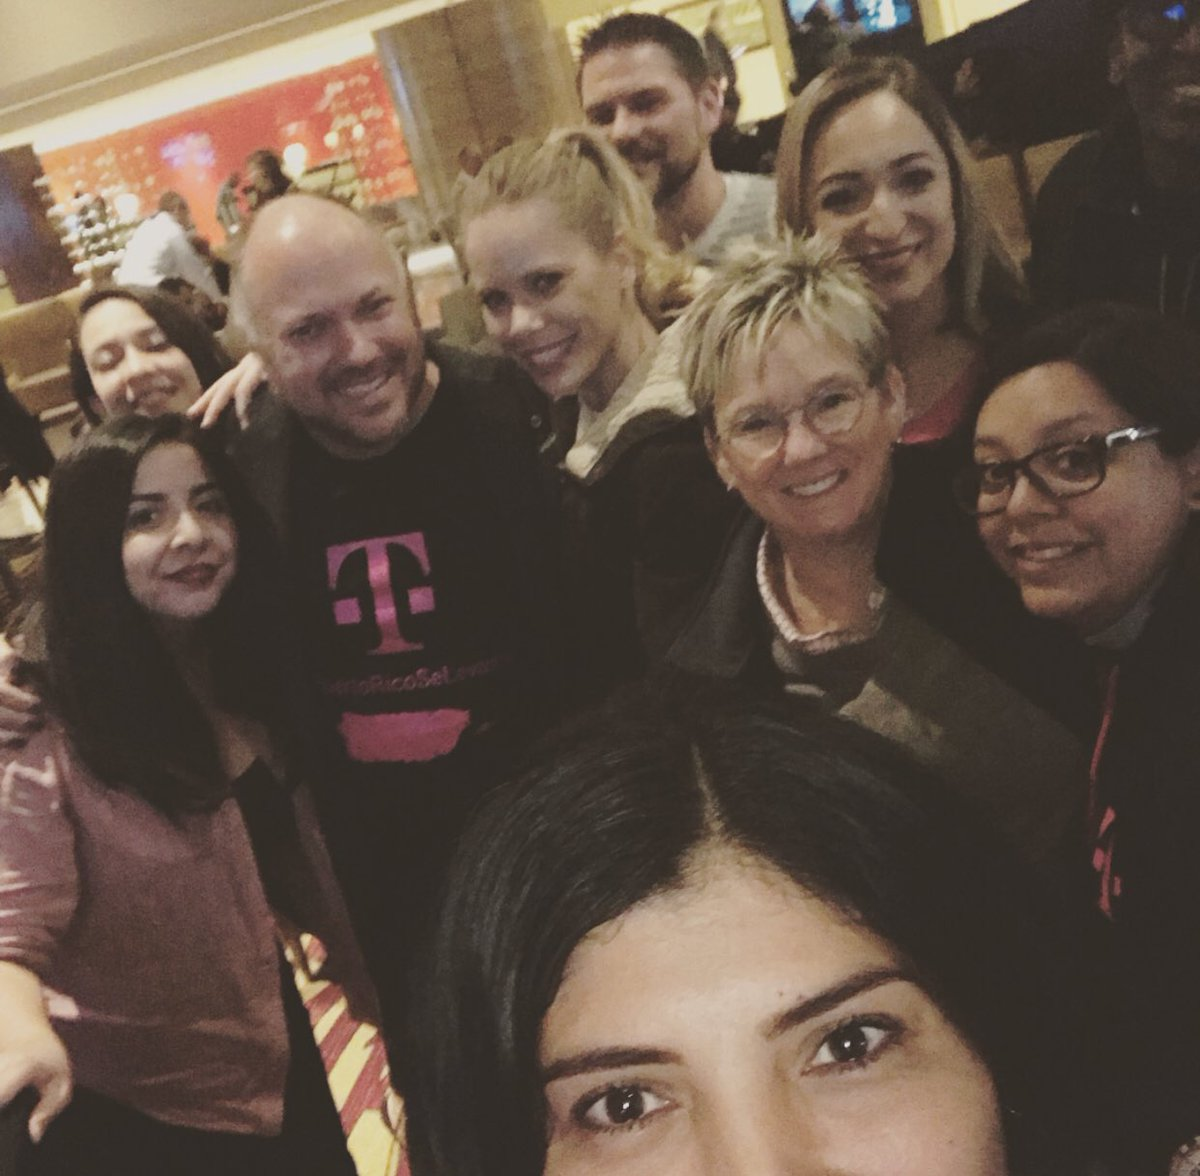 Always a great time when @JonFreier is in town#WLN #NCredible #SSG @mariajimenezz4 @vsamples25 @yes_i_cantu @Kenyadunn12 @WinstonAwadzi @ChiCityLSalazar<br>http://pic.twitter.com/PT9ErsWTXI